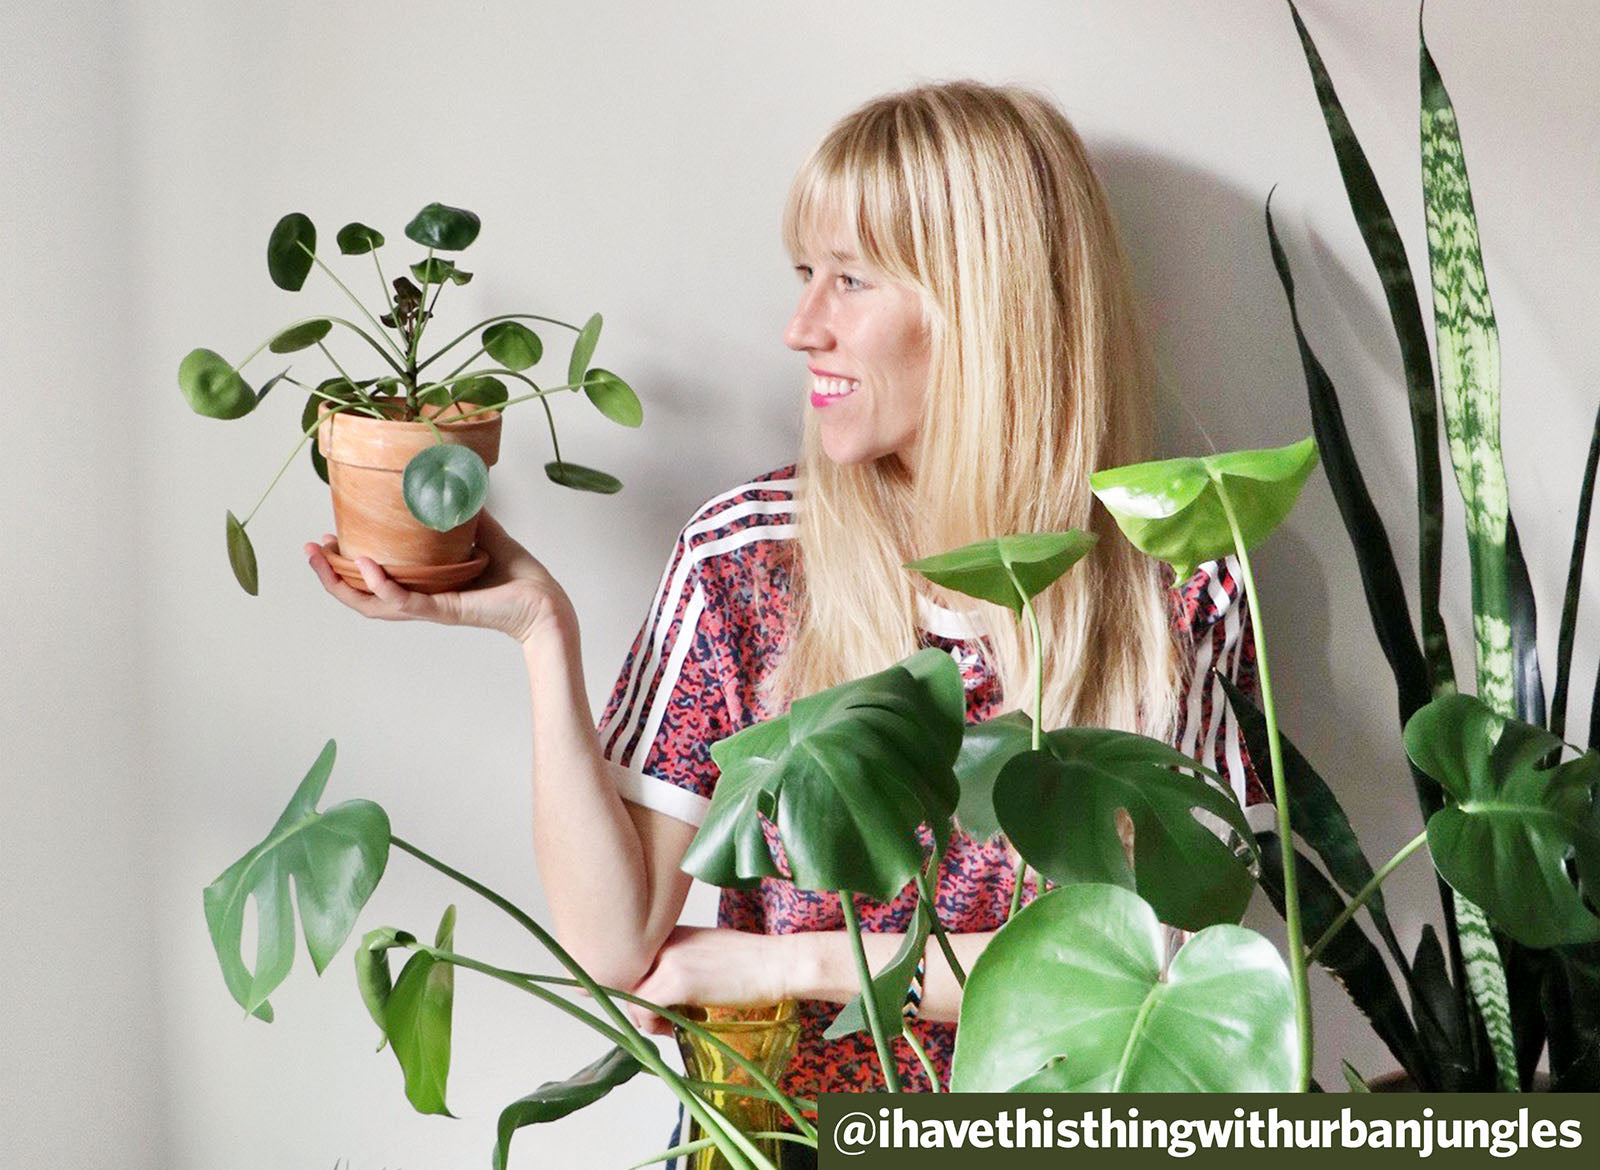 Q&A: Connecting With Nature & Ourselves Through Plants with @ihavethisthingwithurbanjungles